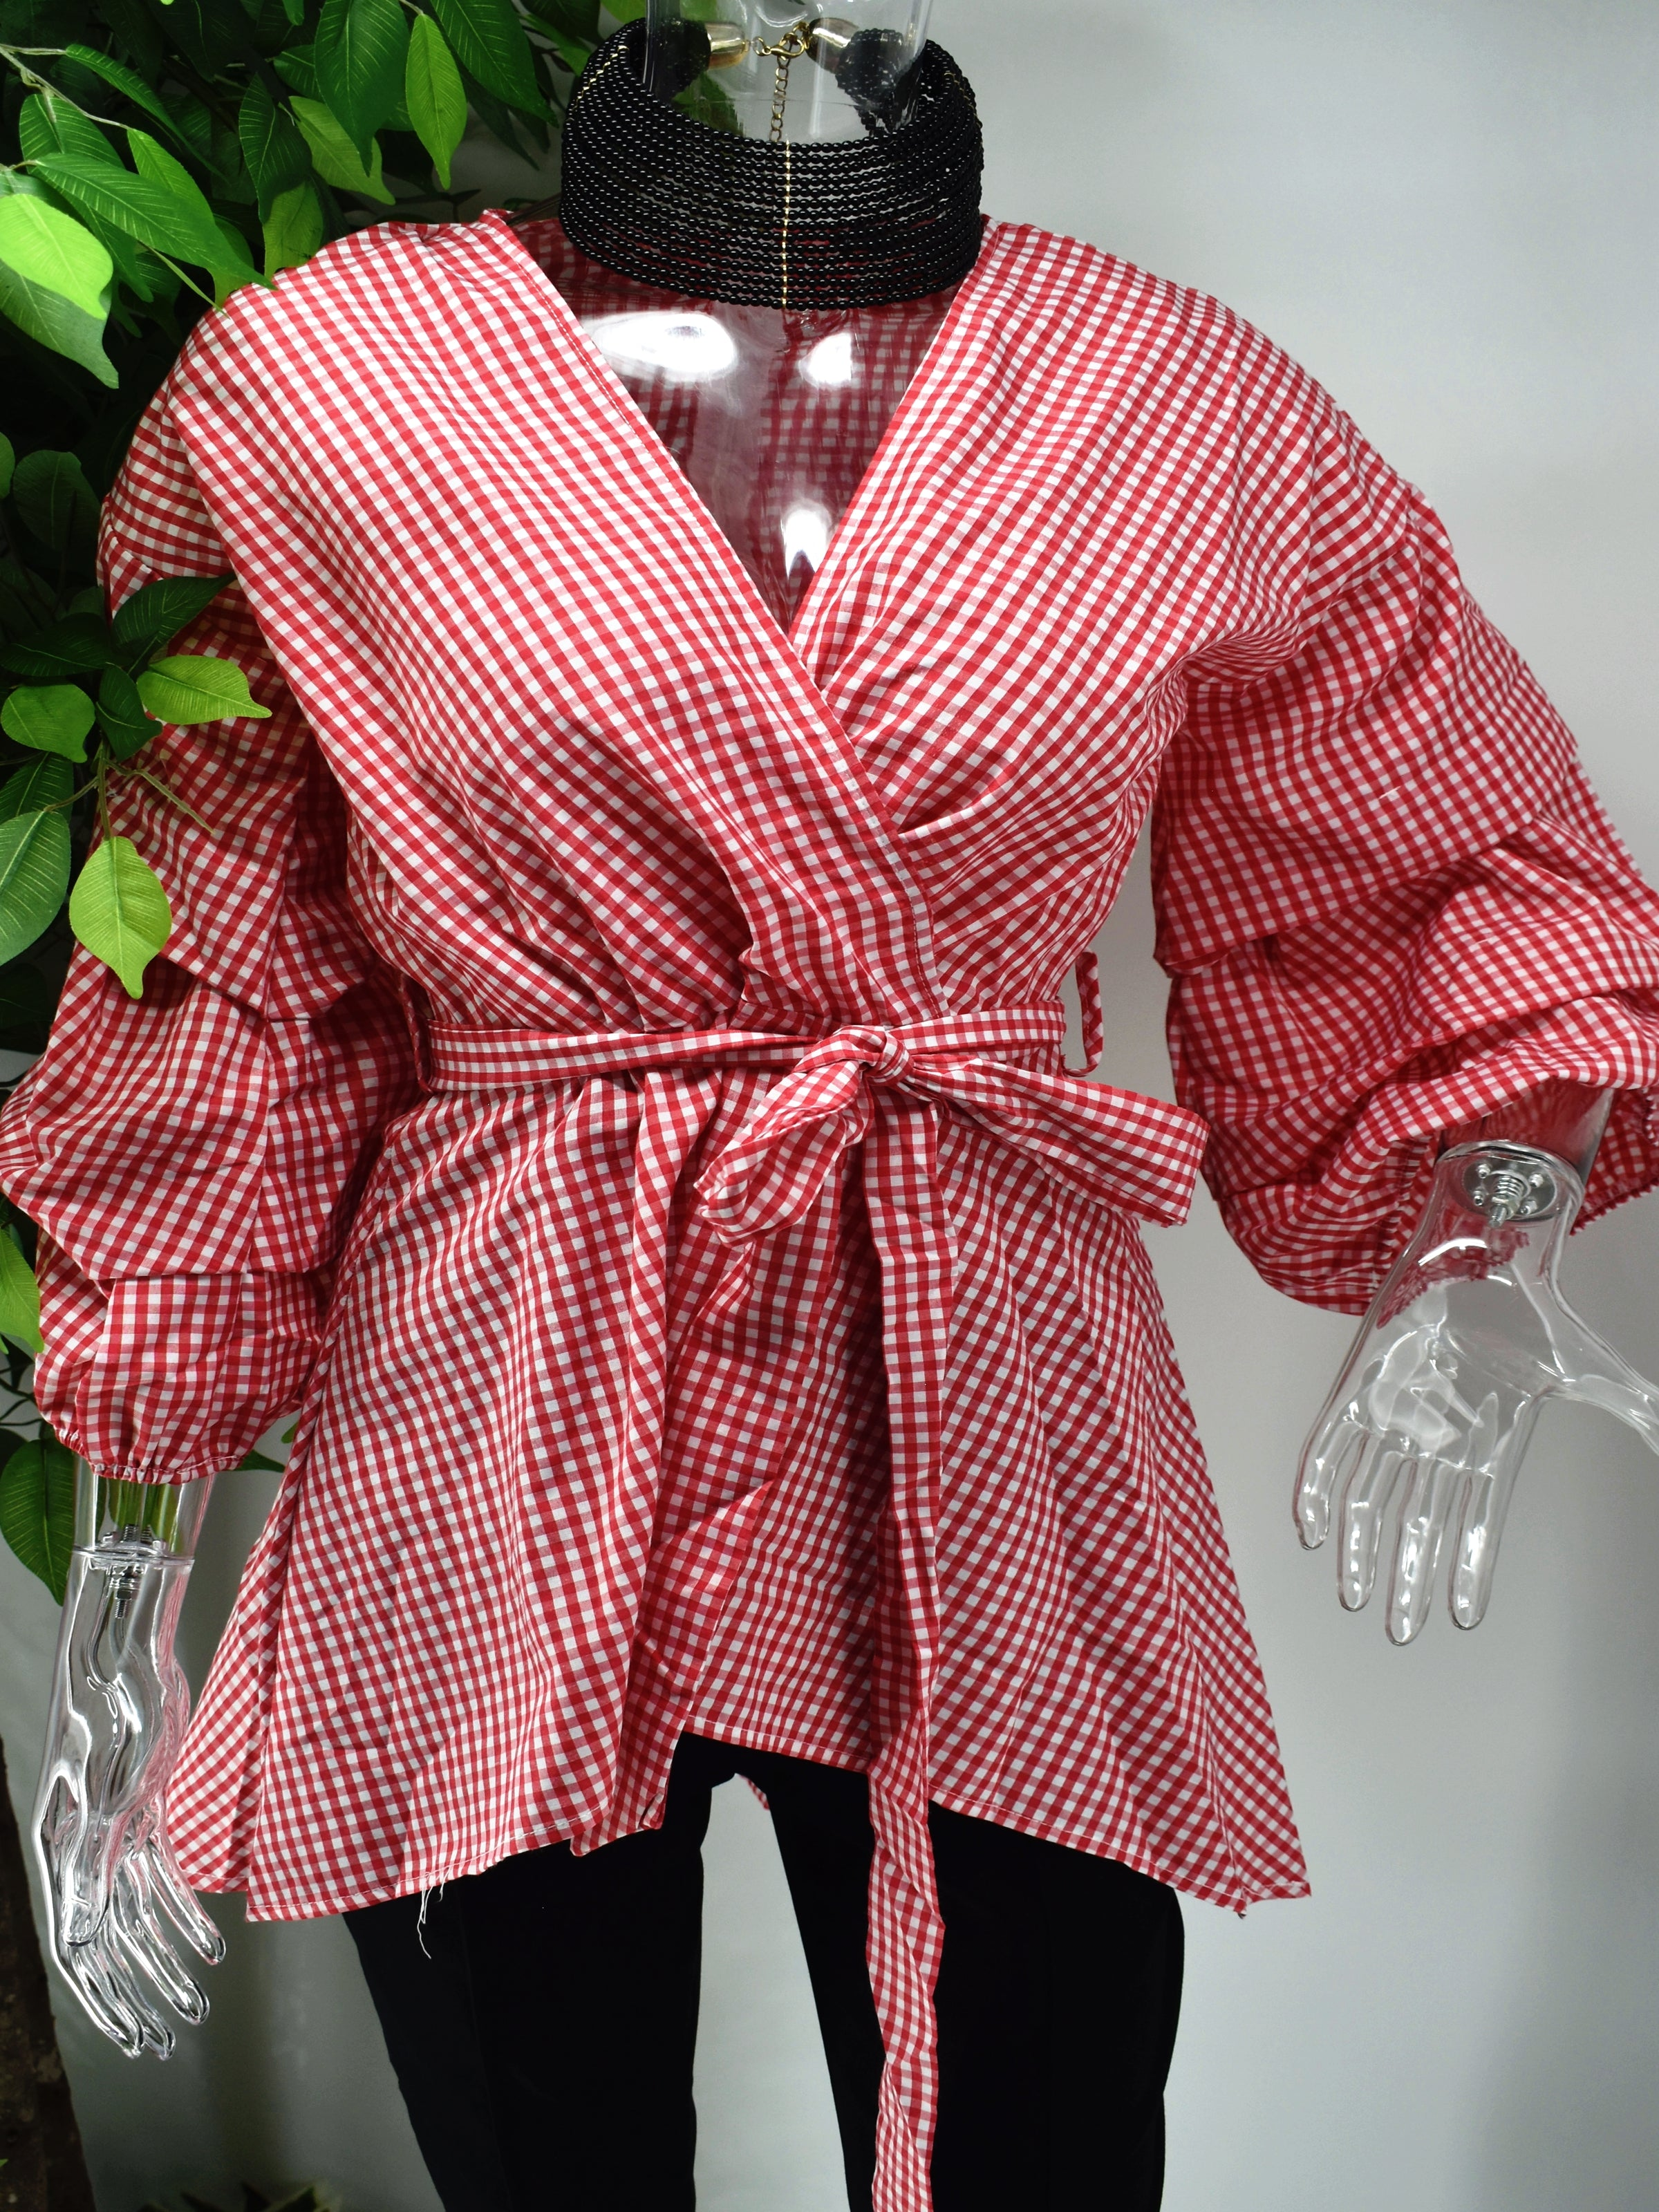 A classic print meets a modern design with our Birdina red and white gingham print top. Our Birdina is full of style and pizzaz. It has a v-neckline, ruffled puffed sleeve and an uneven hem. The design is completed with a tied cinched waist.